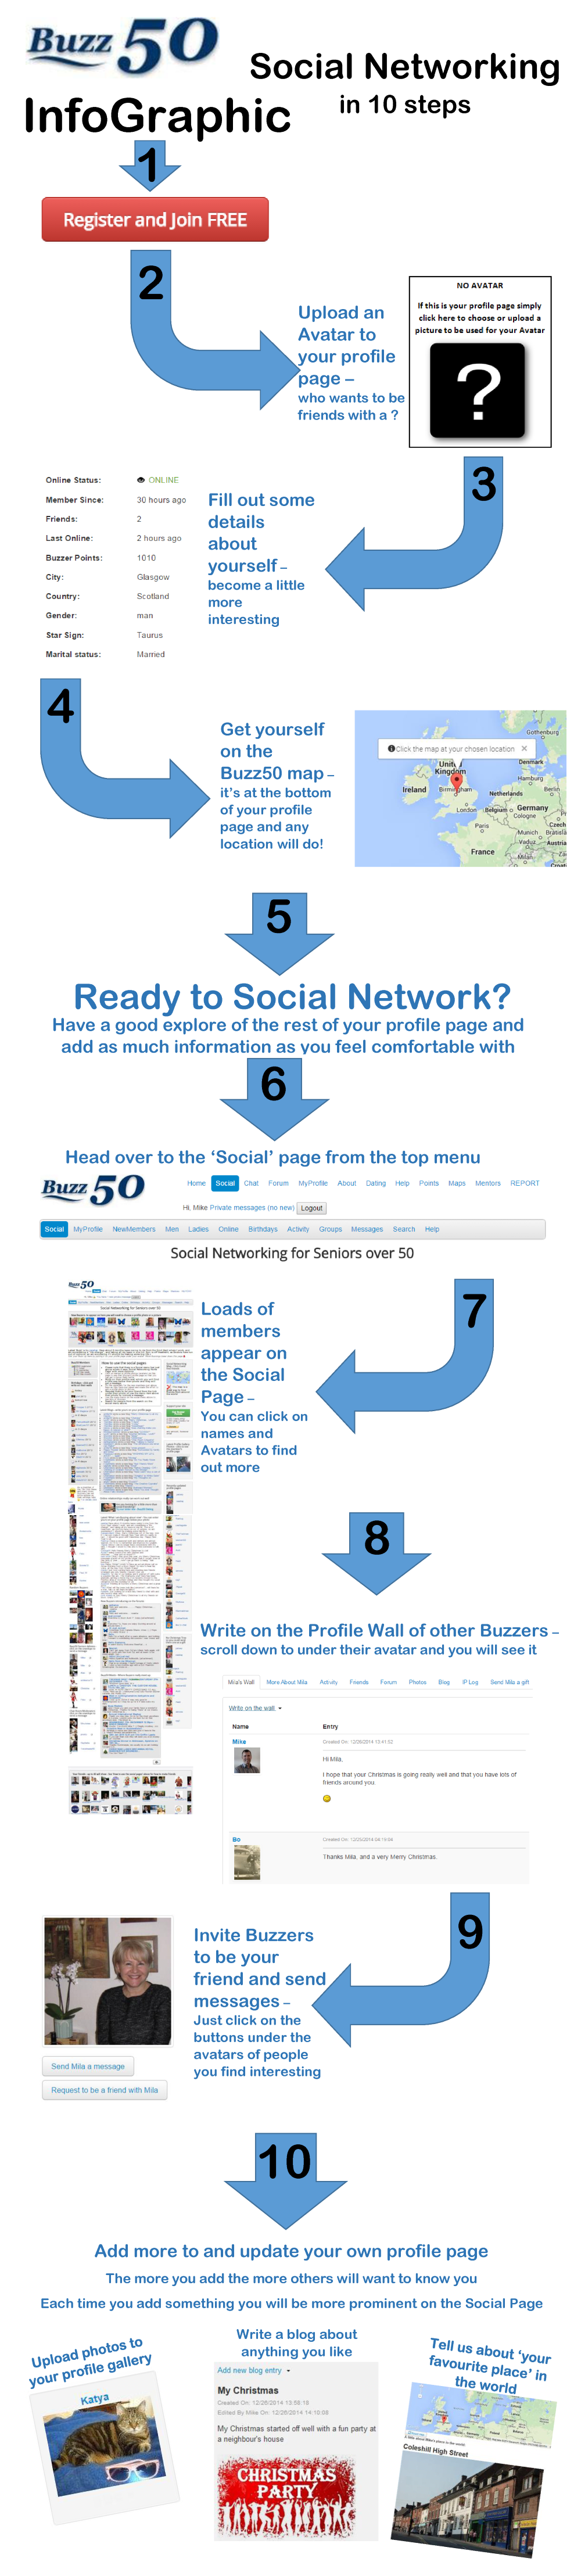 Social networking for seniors over 50 infographic